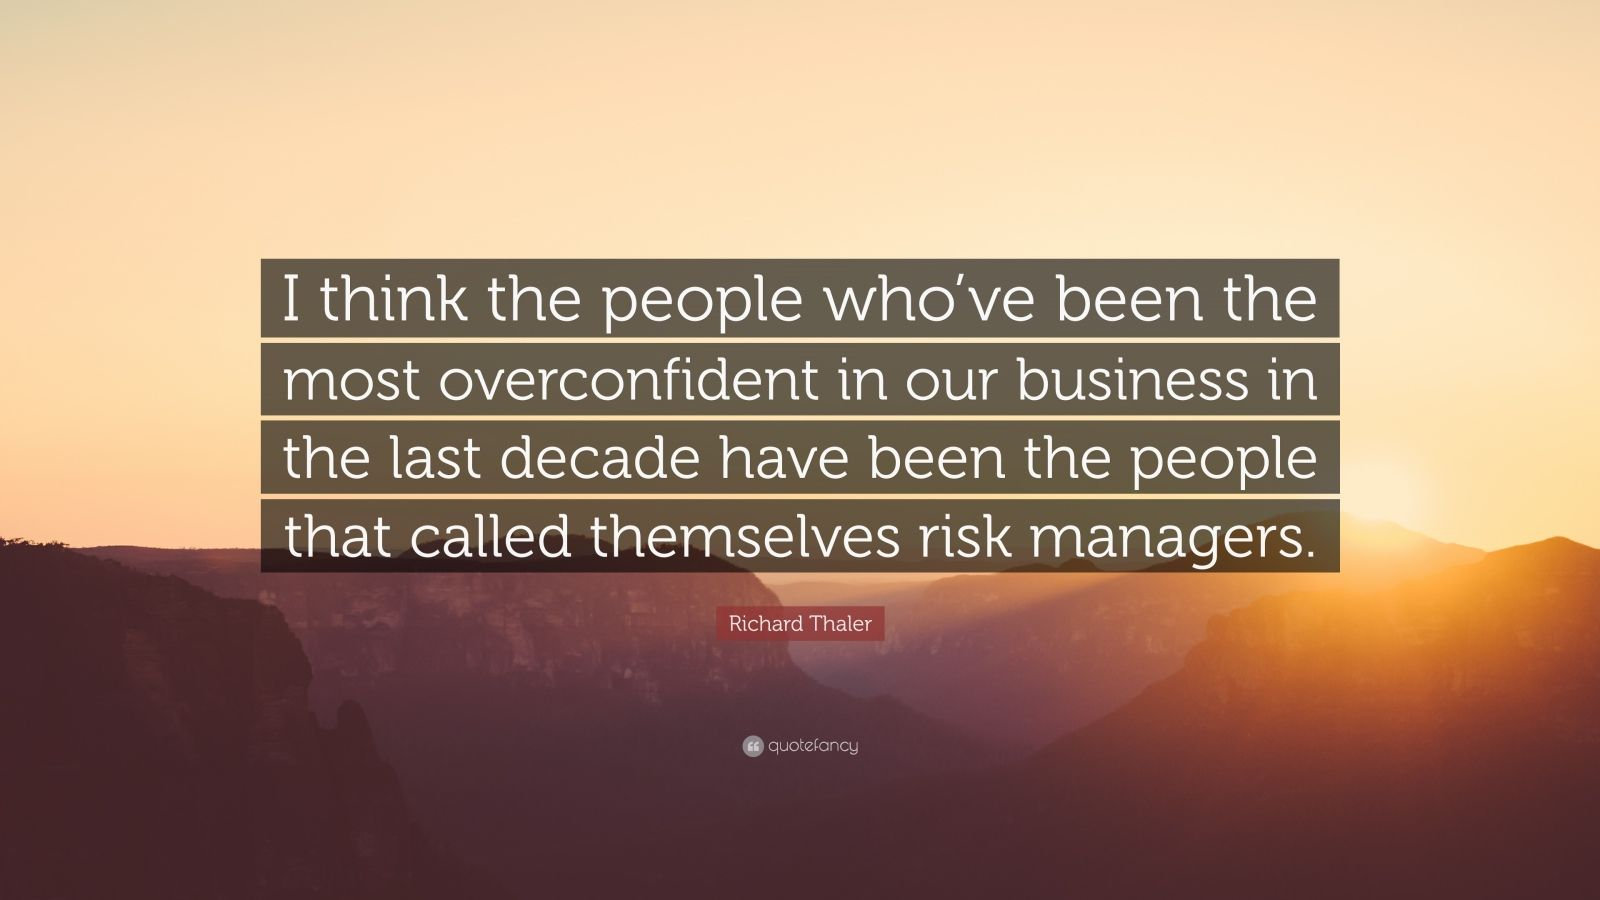 """Richard Thaler Quote: """"I think the people who've been the most overconfident in our business in the last decade have been the people that called themselves risk managers."""""""